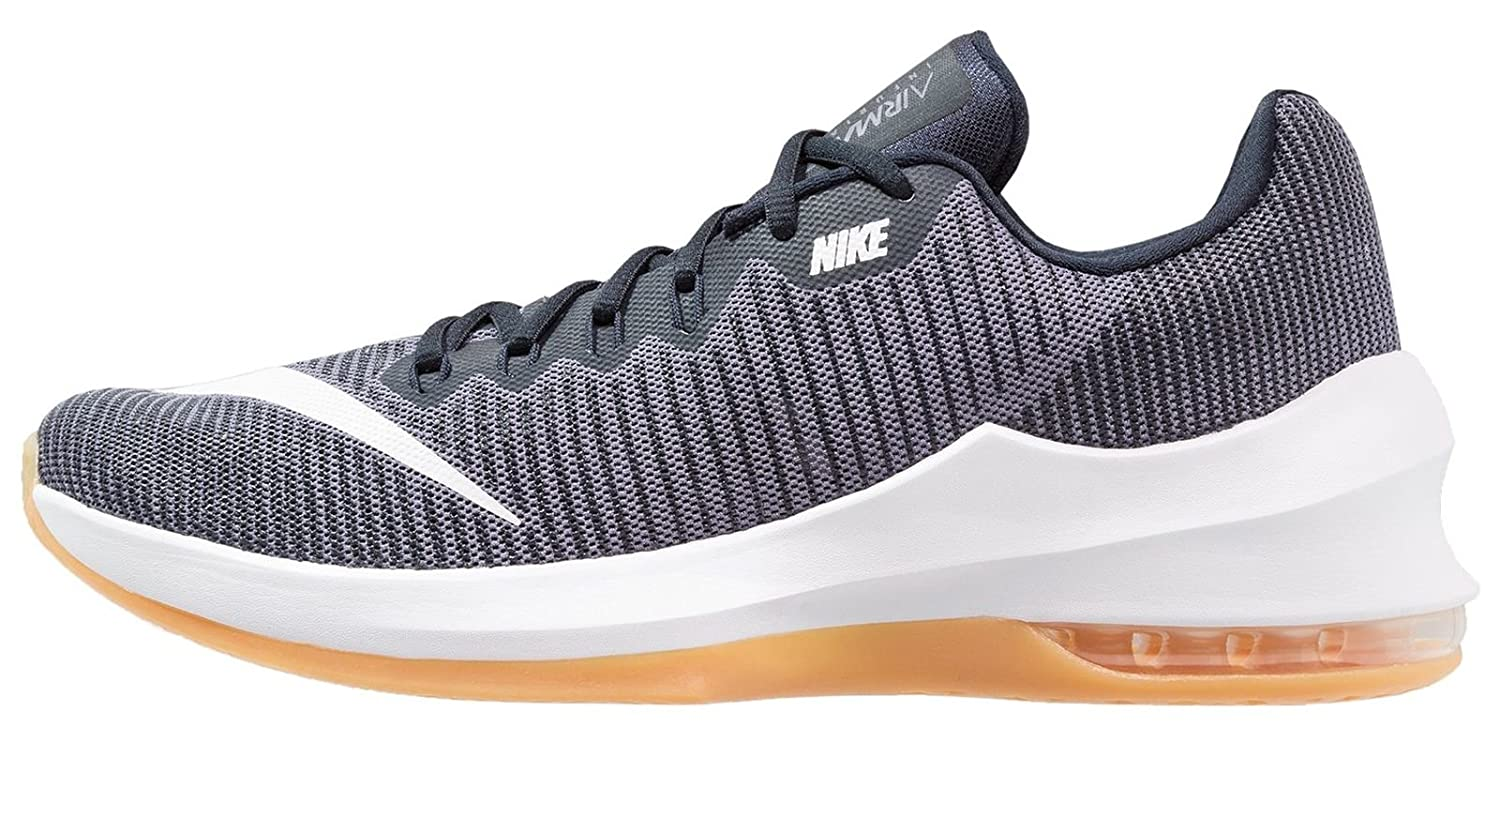 the latest d59a5 28700 Nike Men's Air Max Infuriate 2 Low Basketball Shoes